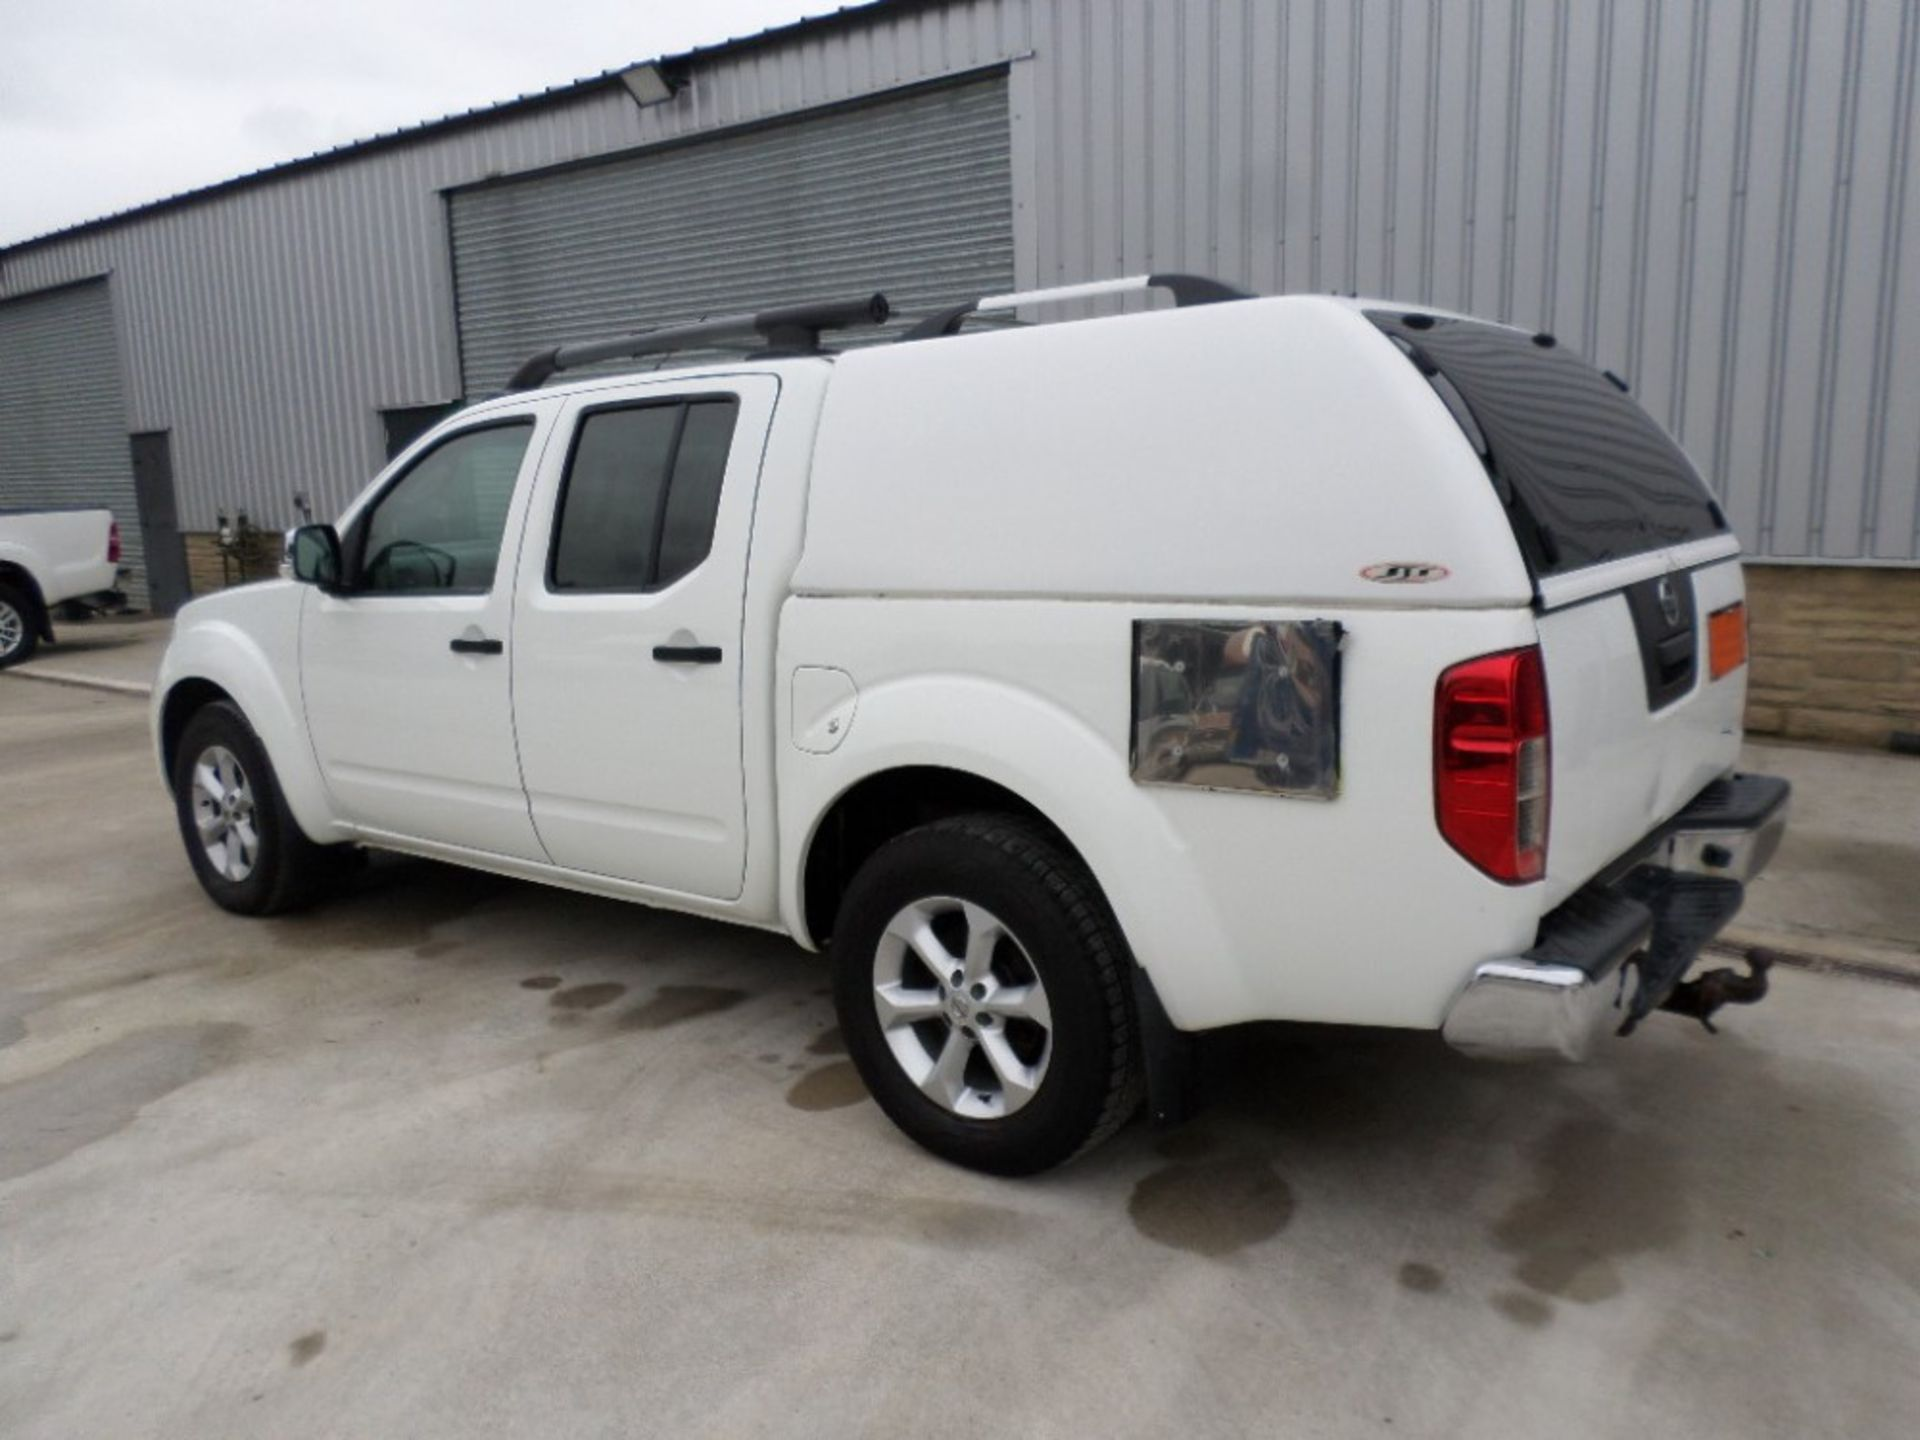 2011 NISSAN NAVARA DCI 188 TEKNA D/CAB PICKUP (LOCATION SHEFFIELD) UNREGISTERED EX MOD, 115121M ( - Image 3 of 6